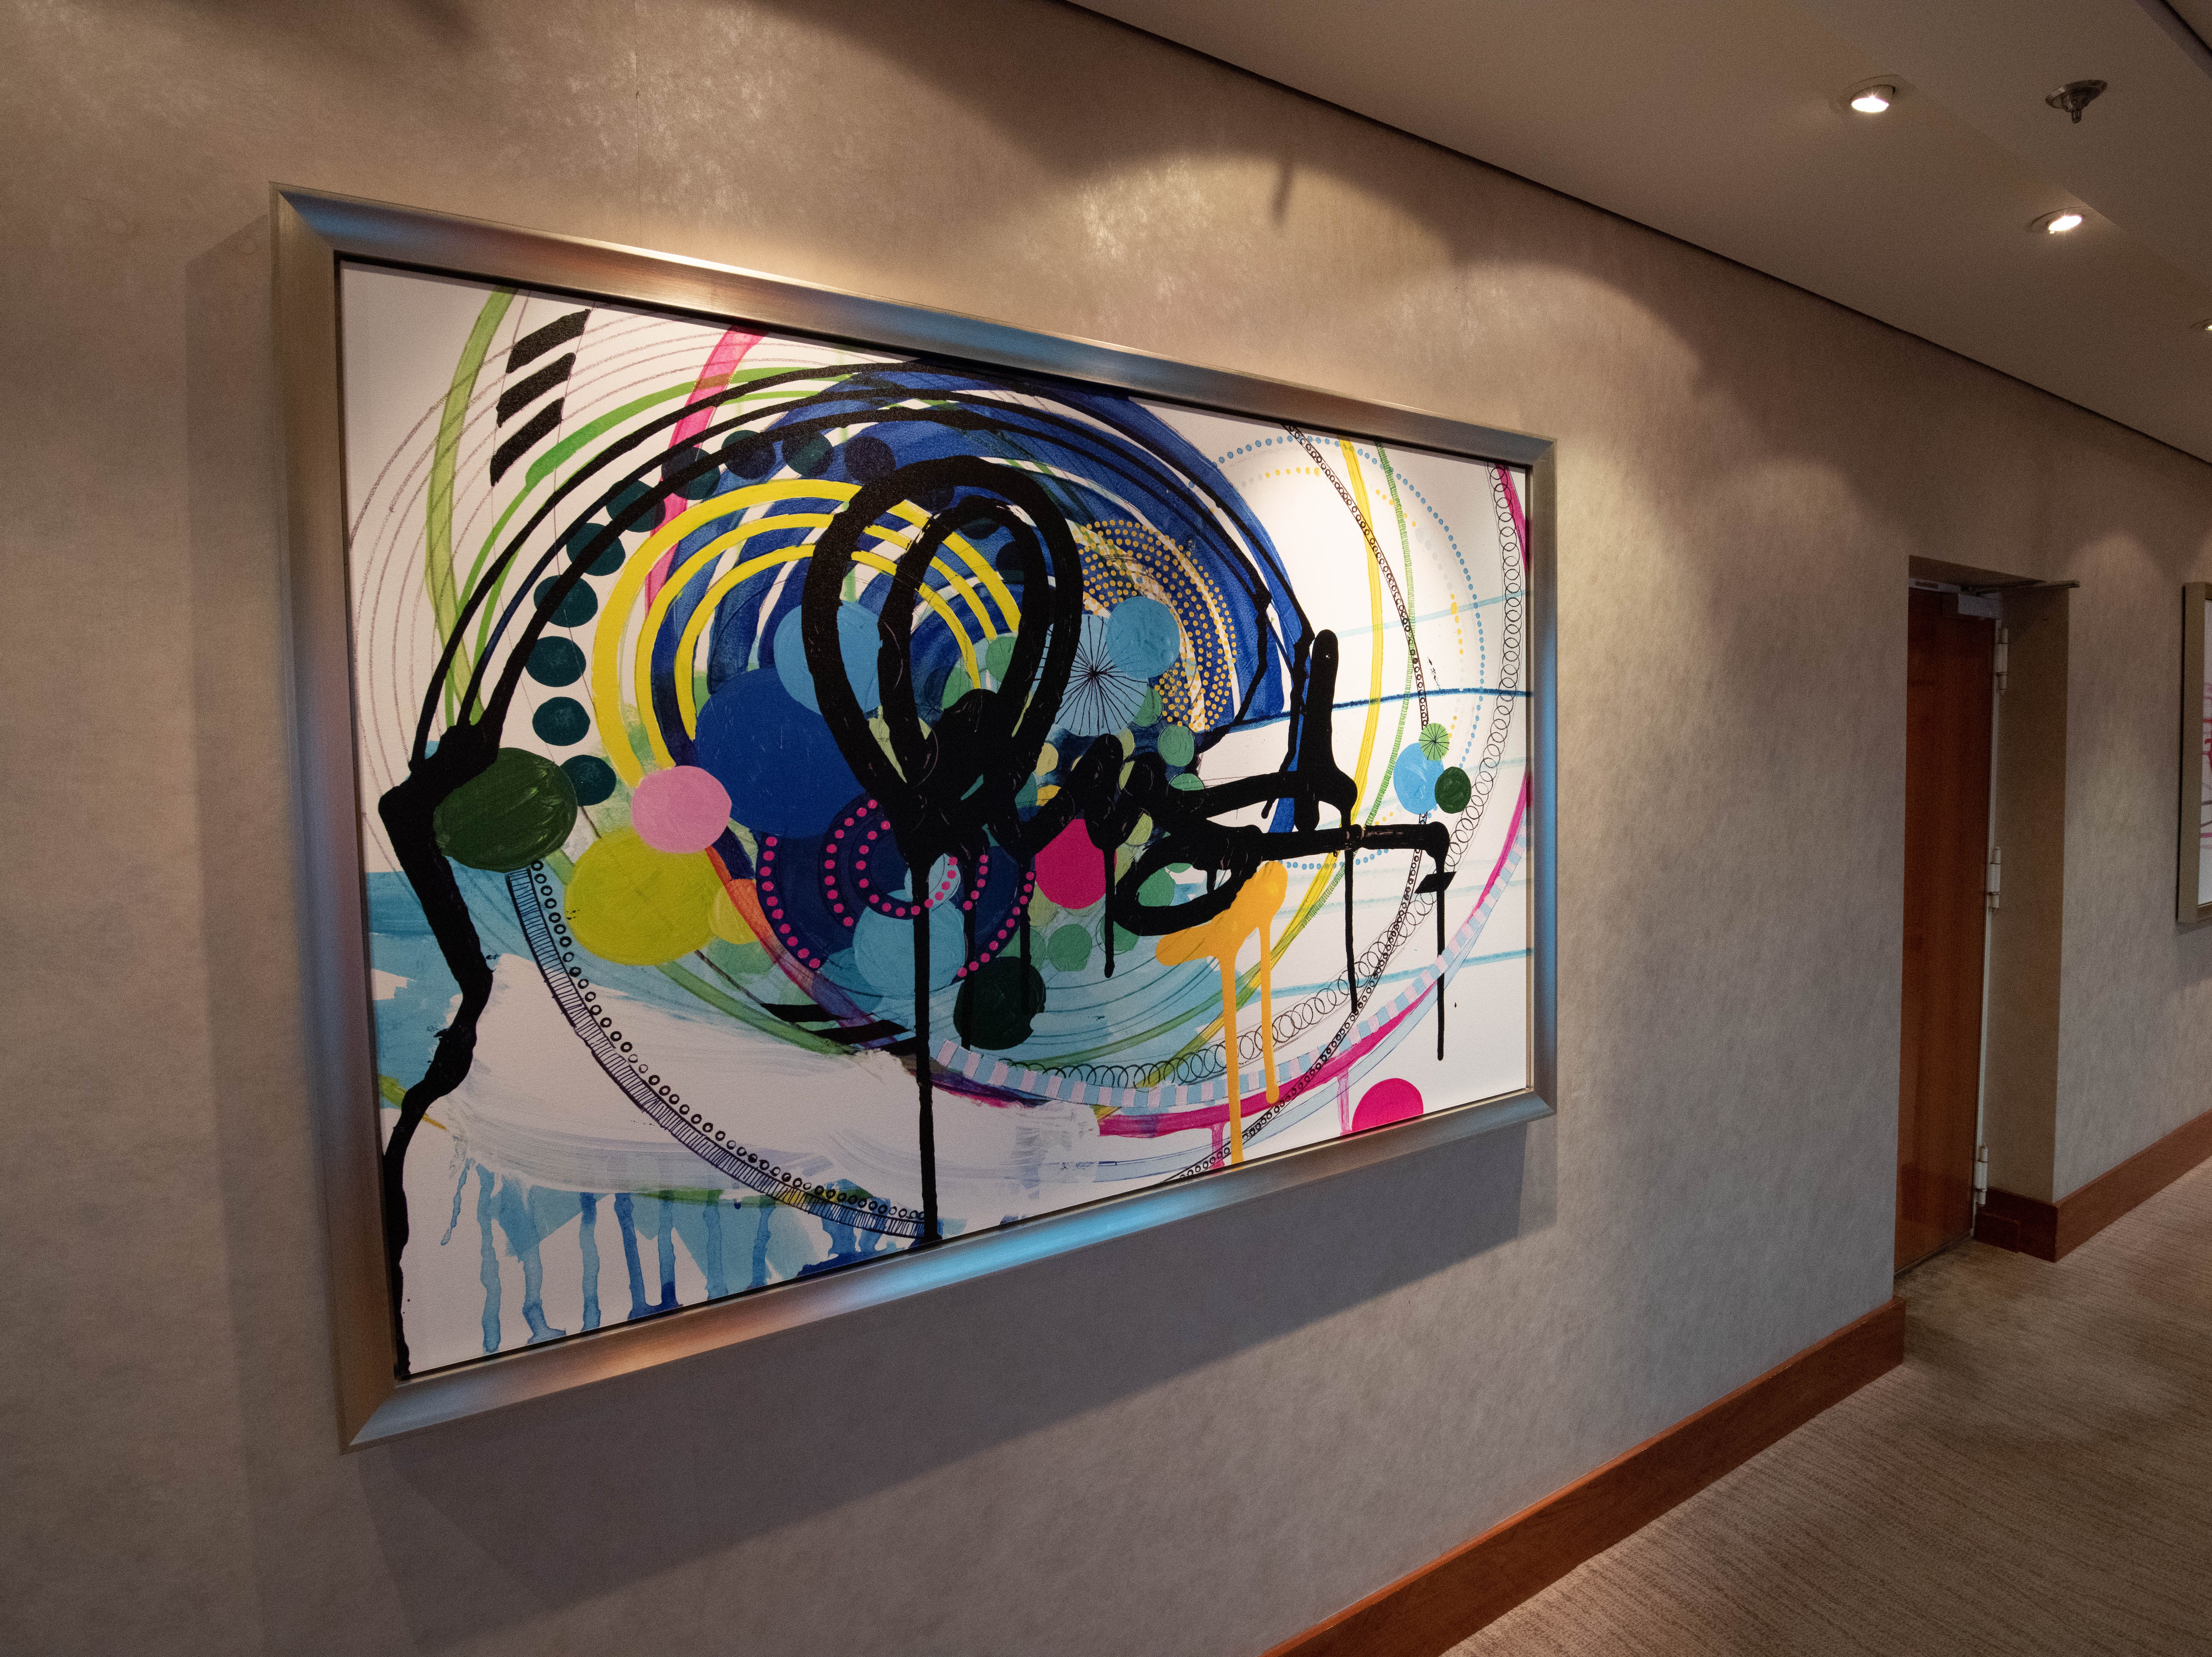 Contemporary art lines the hallway between the Skyline Main Dining Room and Capitol Atrium on Deck 5.